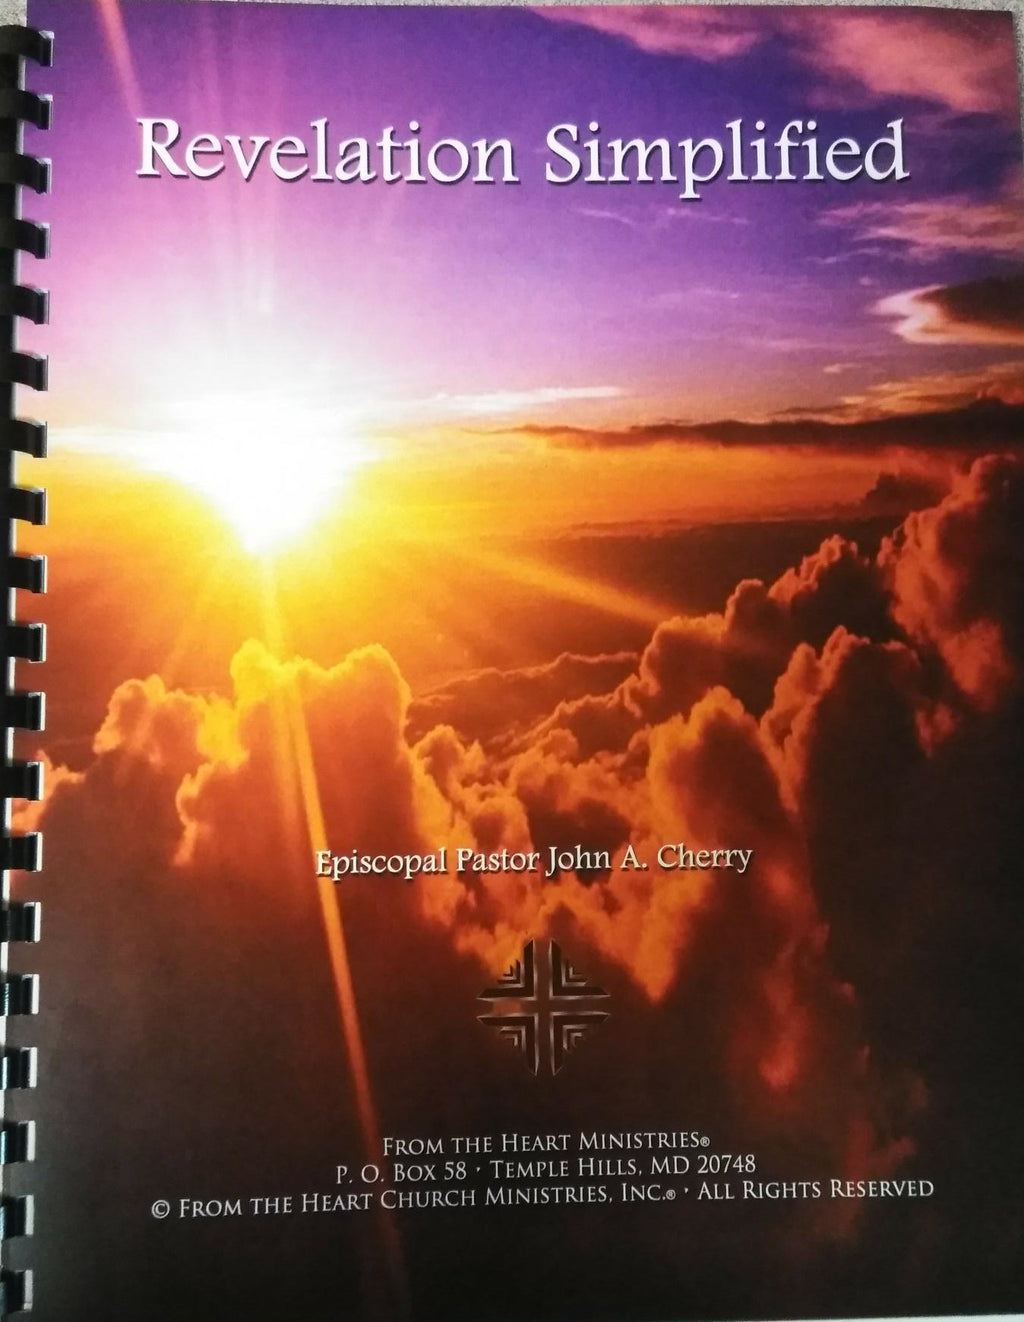 Revelation Simplified Booklet